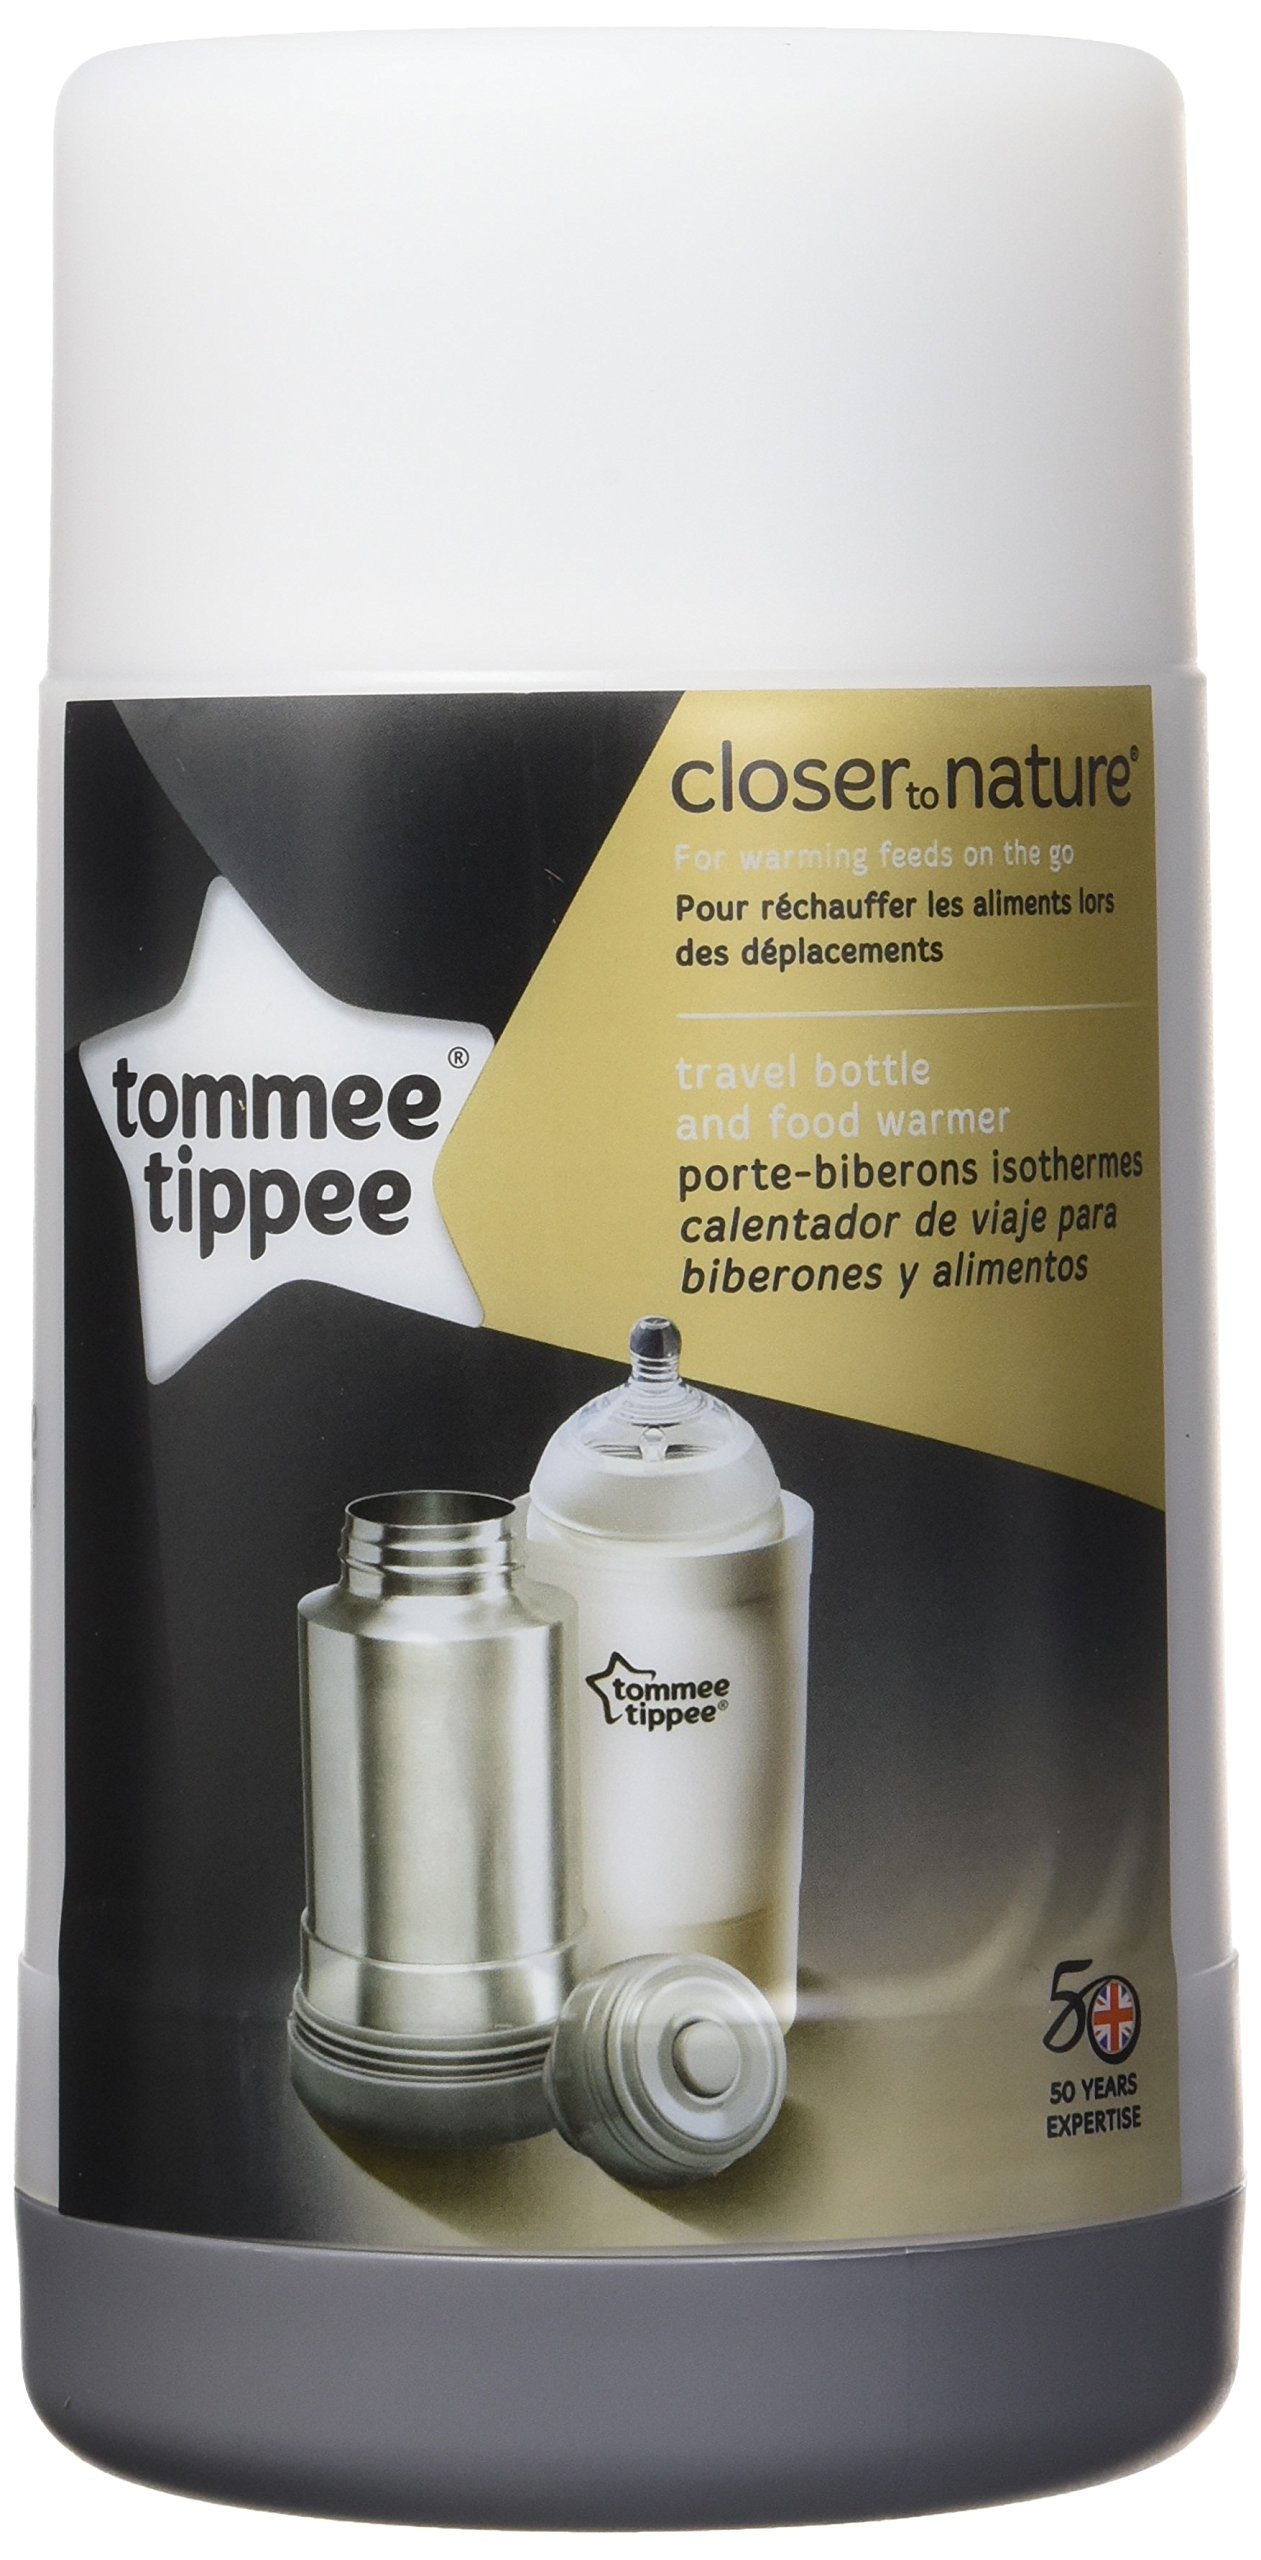 Tommee Tippee Closer to Nature Portable Travel Food and Baby Bottle Warmer